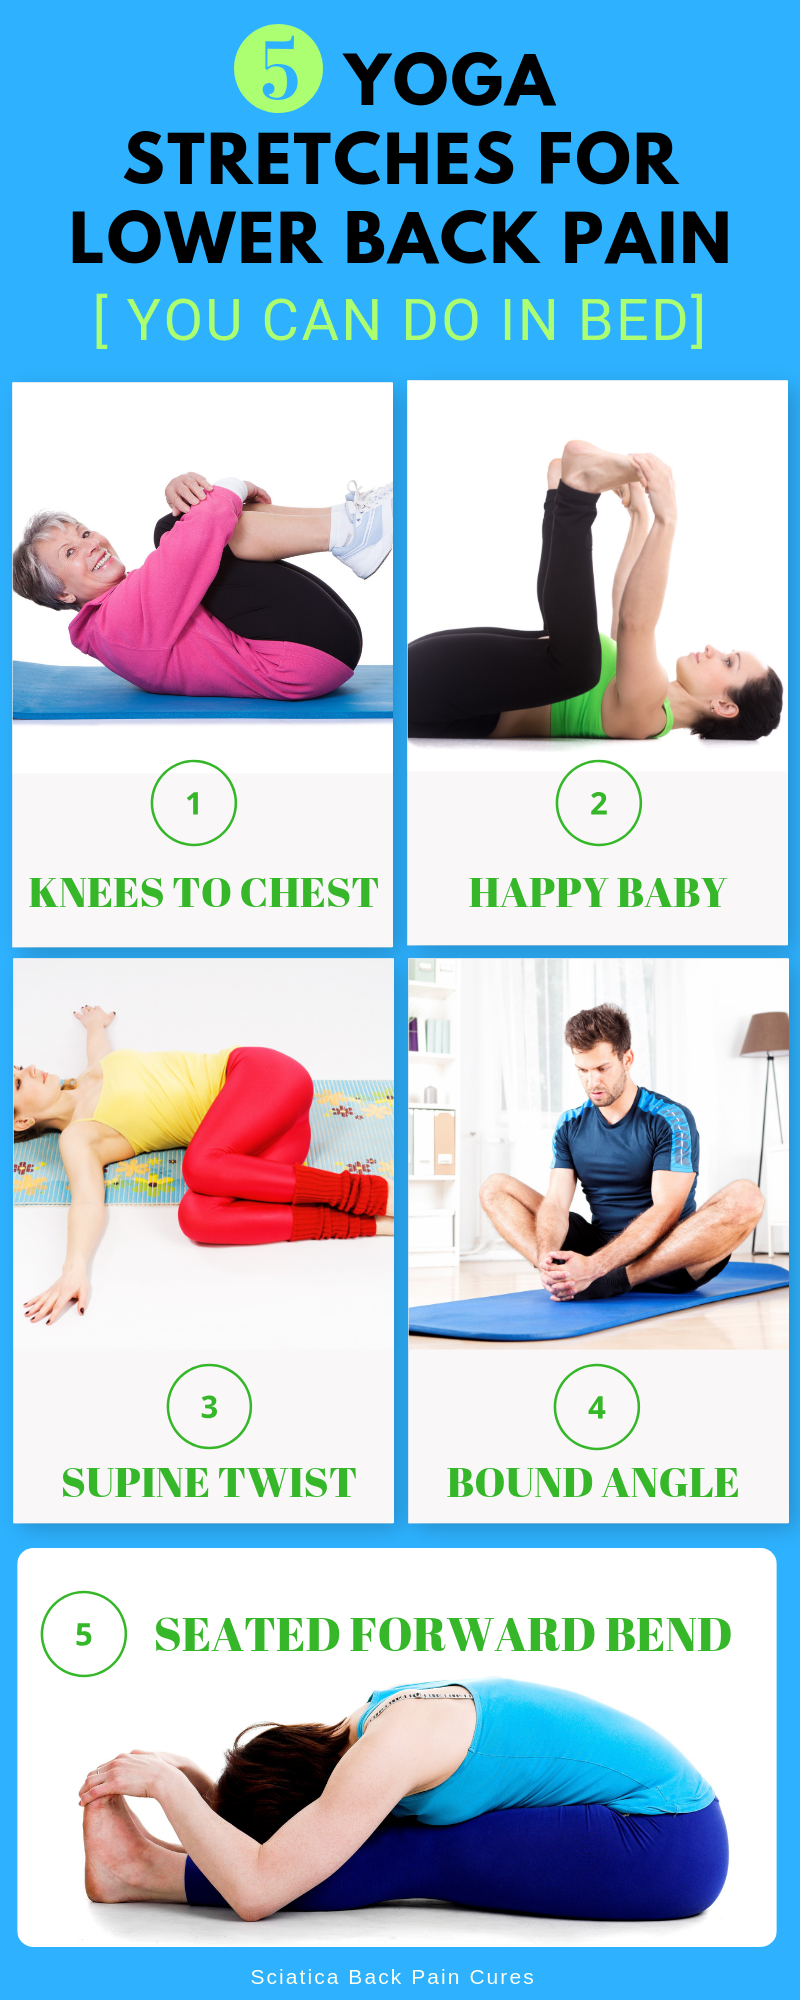 Yoga Stretches To Do In Bed